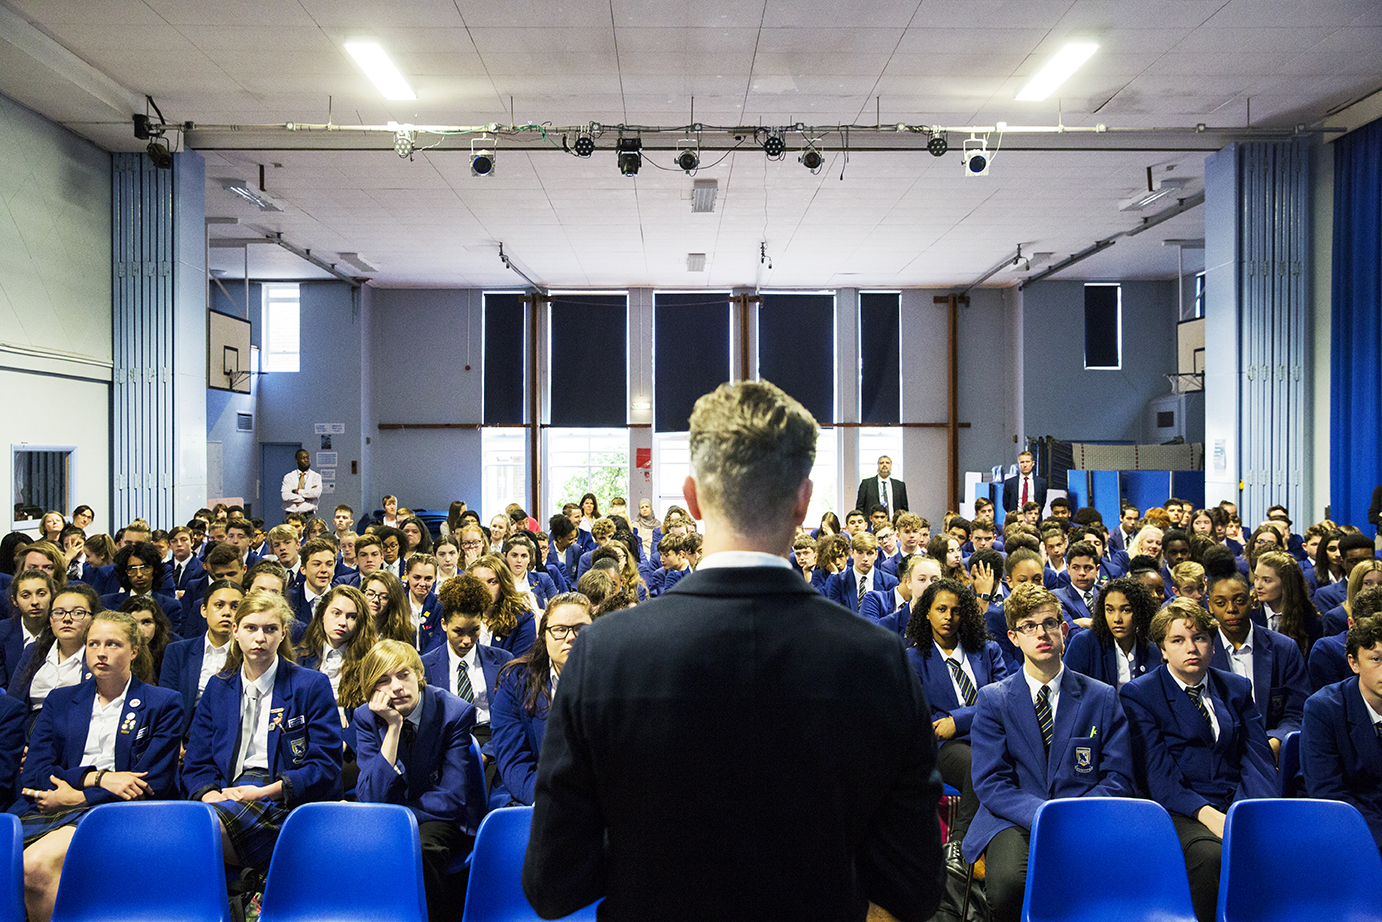 Teacher standing in front of school assembly